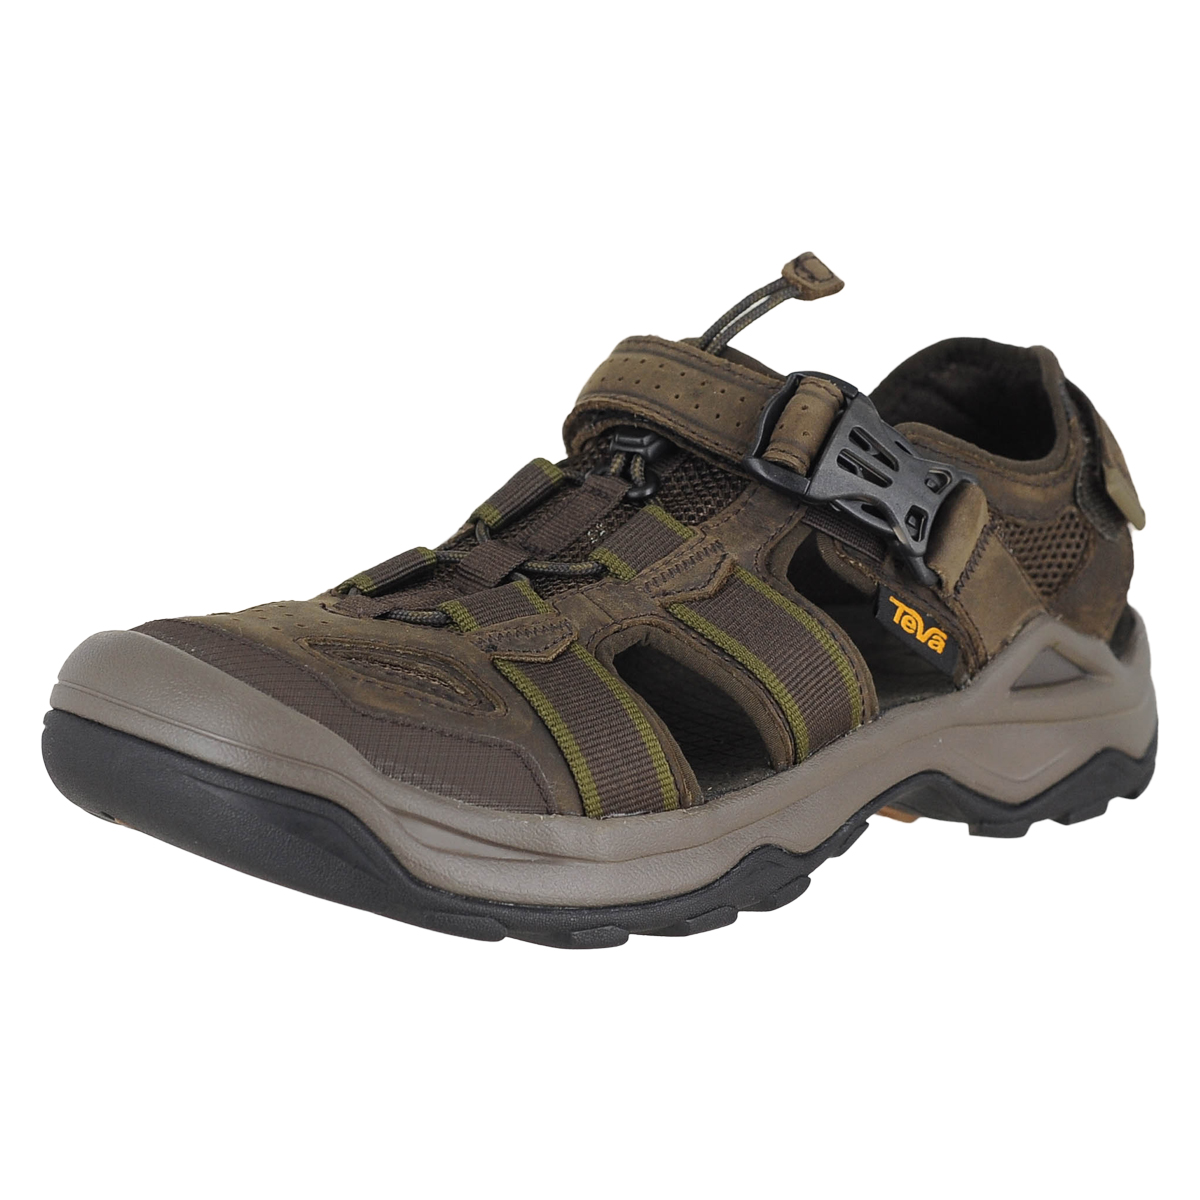 93759b721 Details about Teva Omnium 2 Leather Turkish Coffee Mens Fisherman Sandal  Size 10M